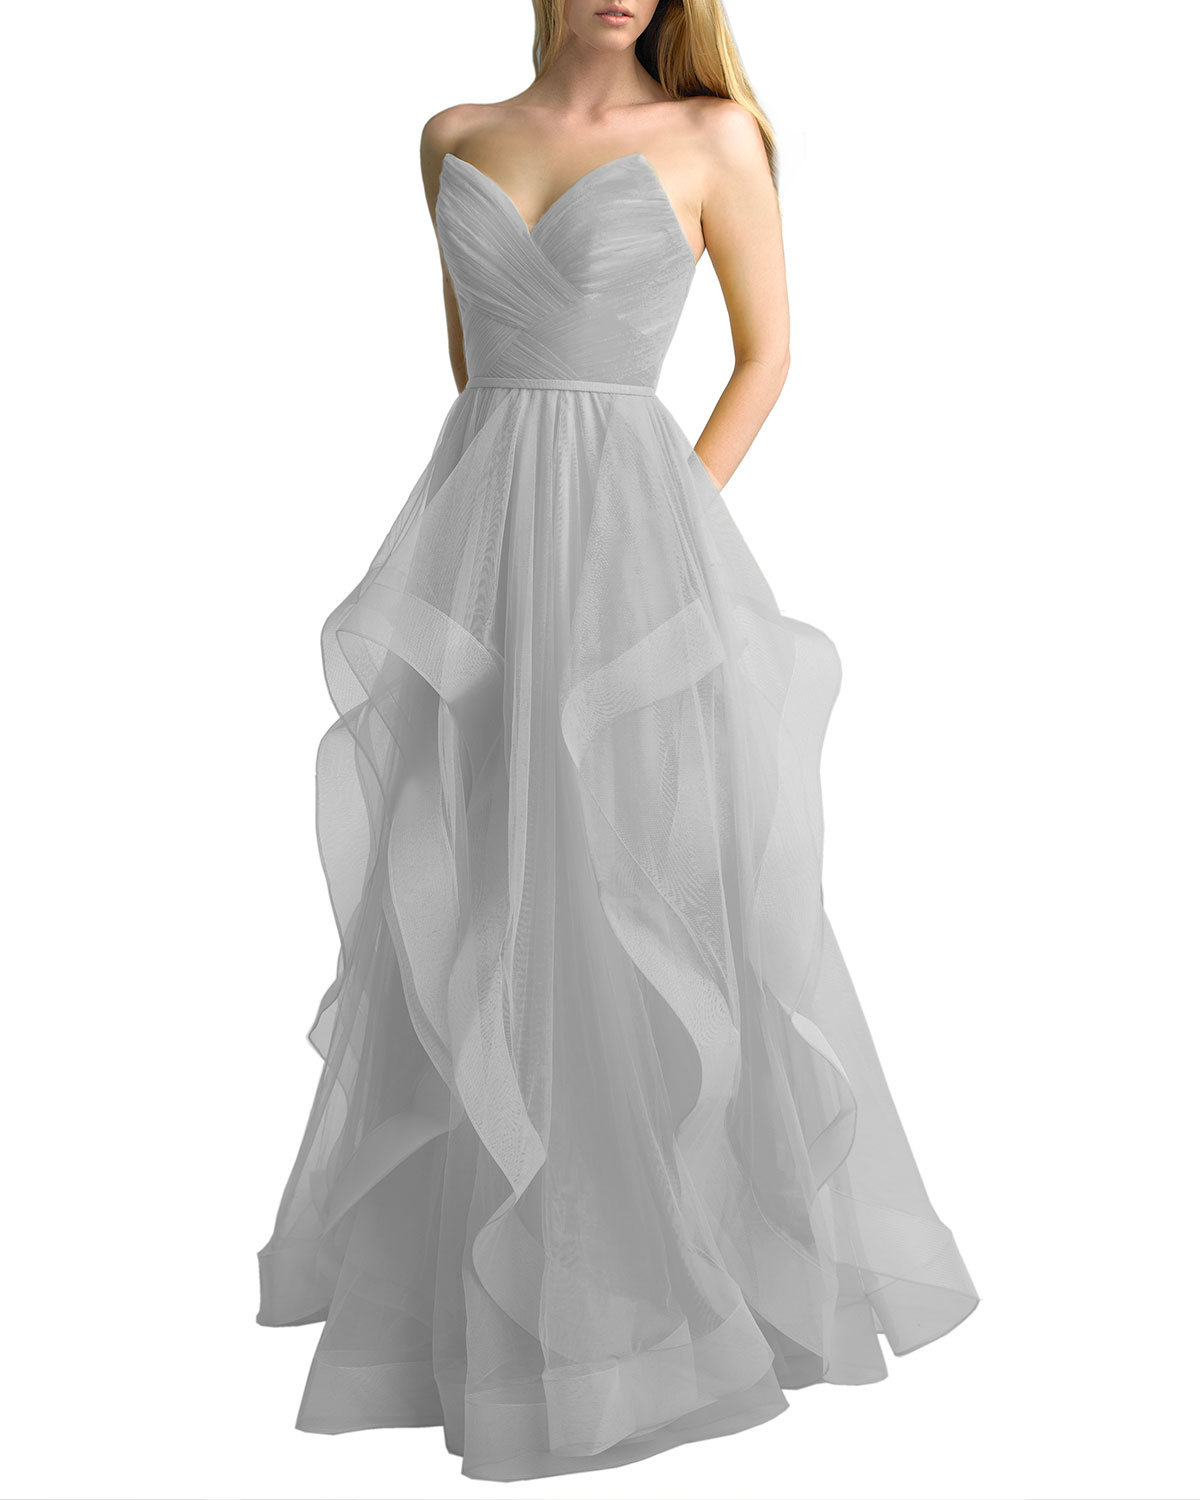 Basix Corseted Tulle A-Line Gown with Cascading Skirt